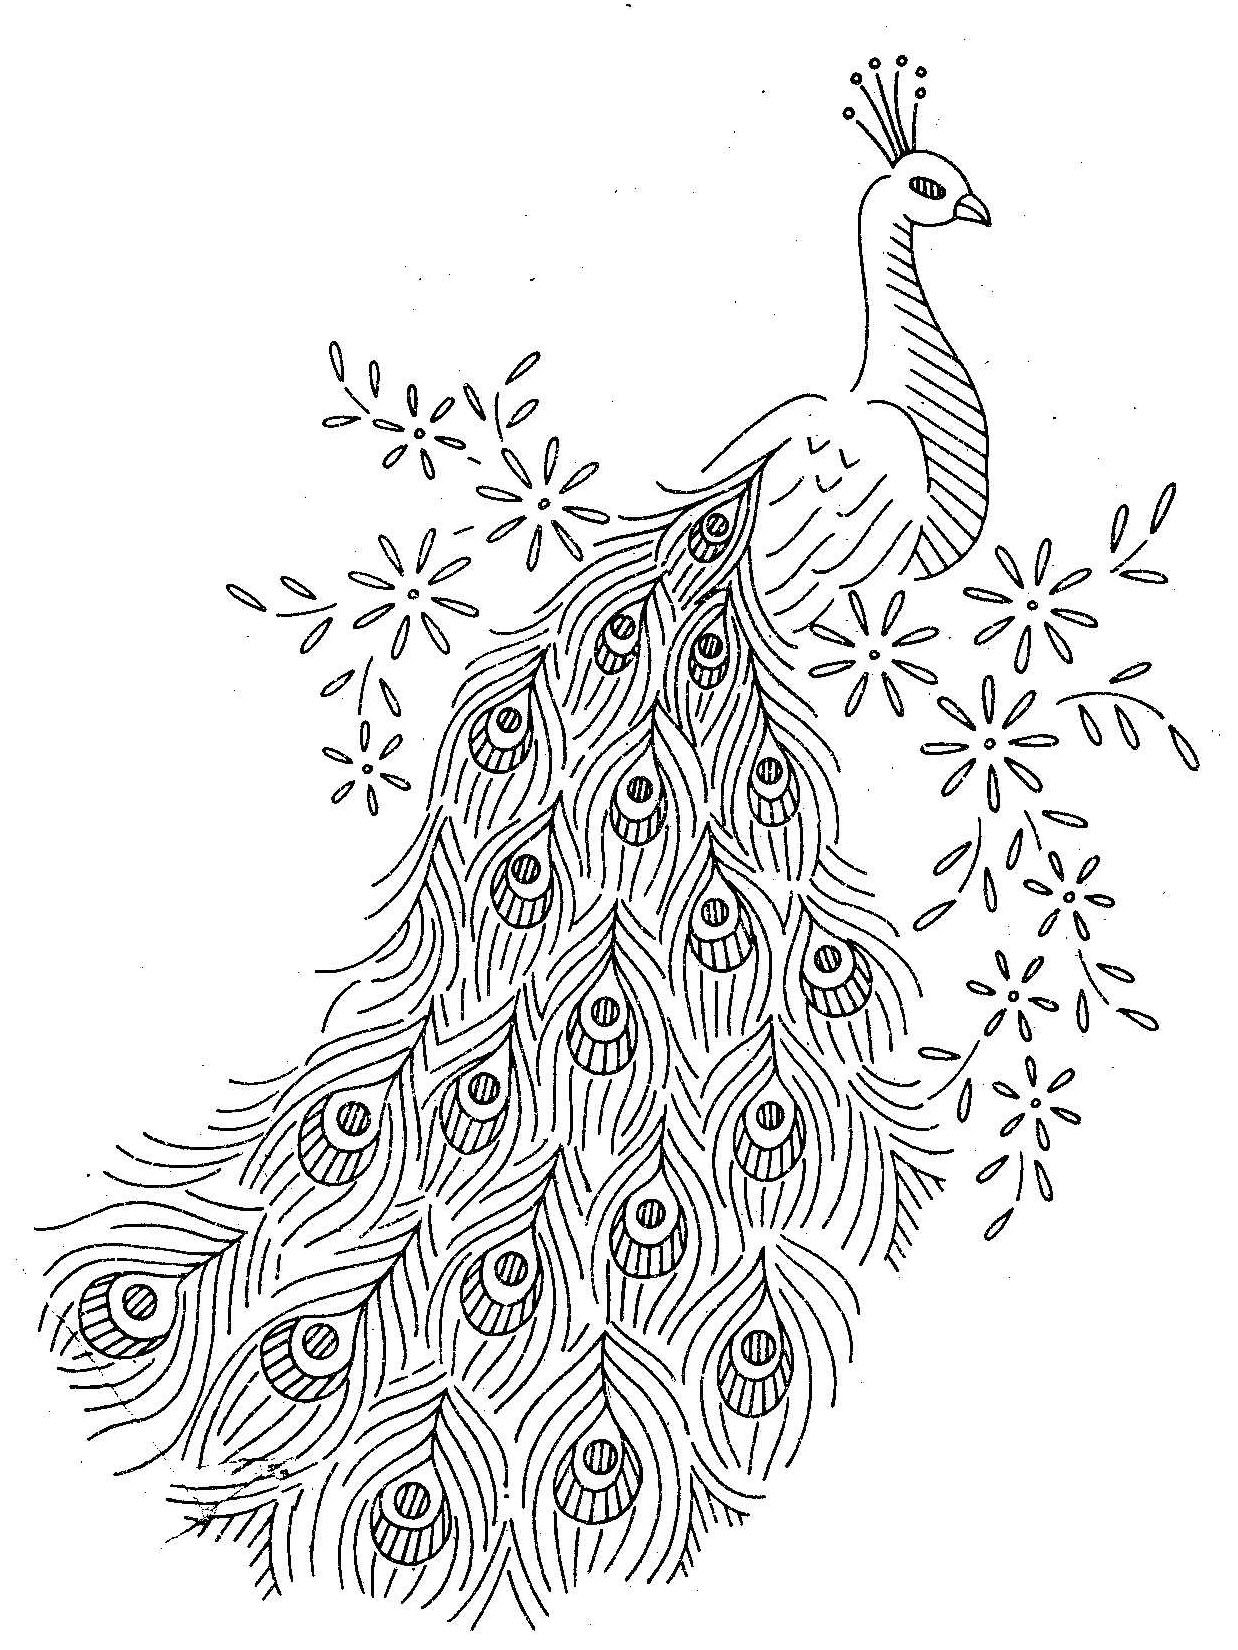 Vintage hand embroidery pattern alice brook 7297 peacocks for vintage hand embroidery pattern alice brook 7297 peacocks for linens scarfs etc bankloansurffo Choice Image